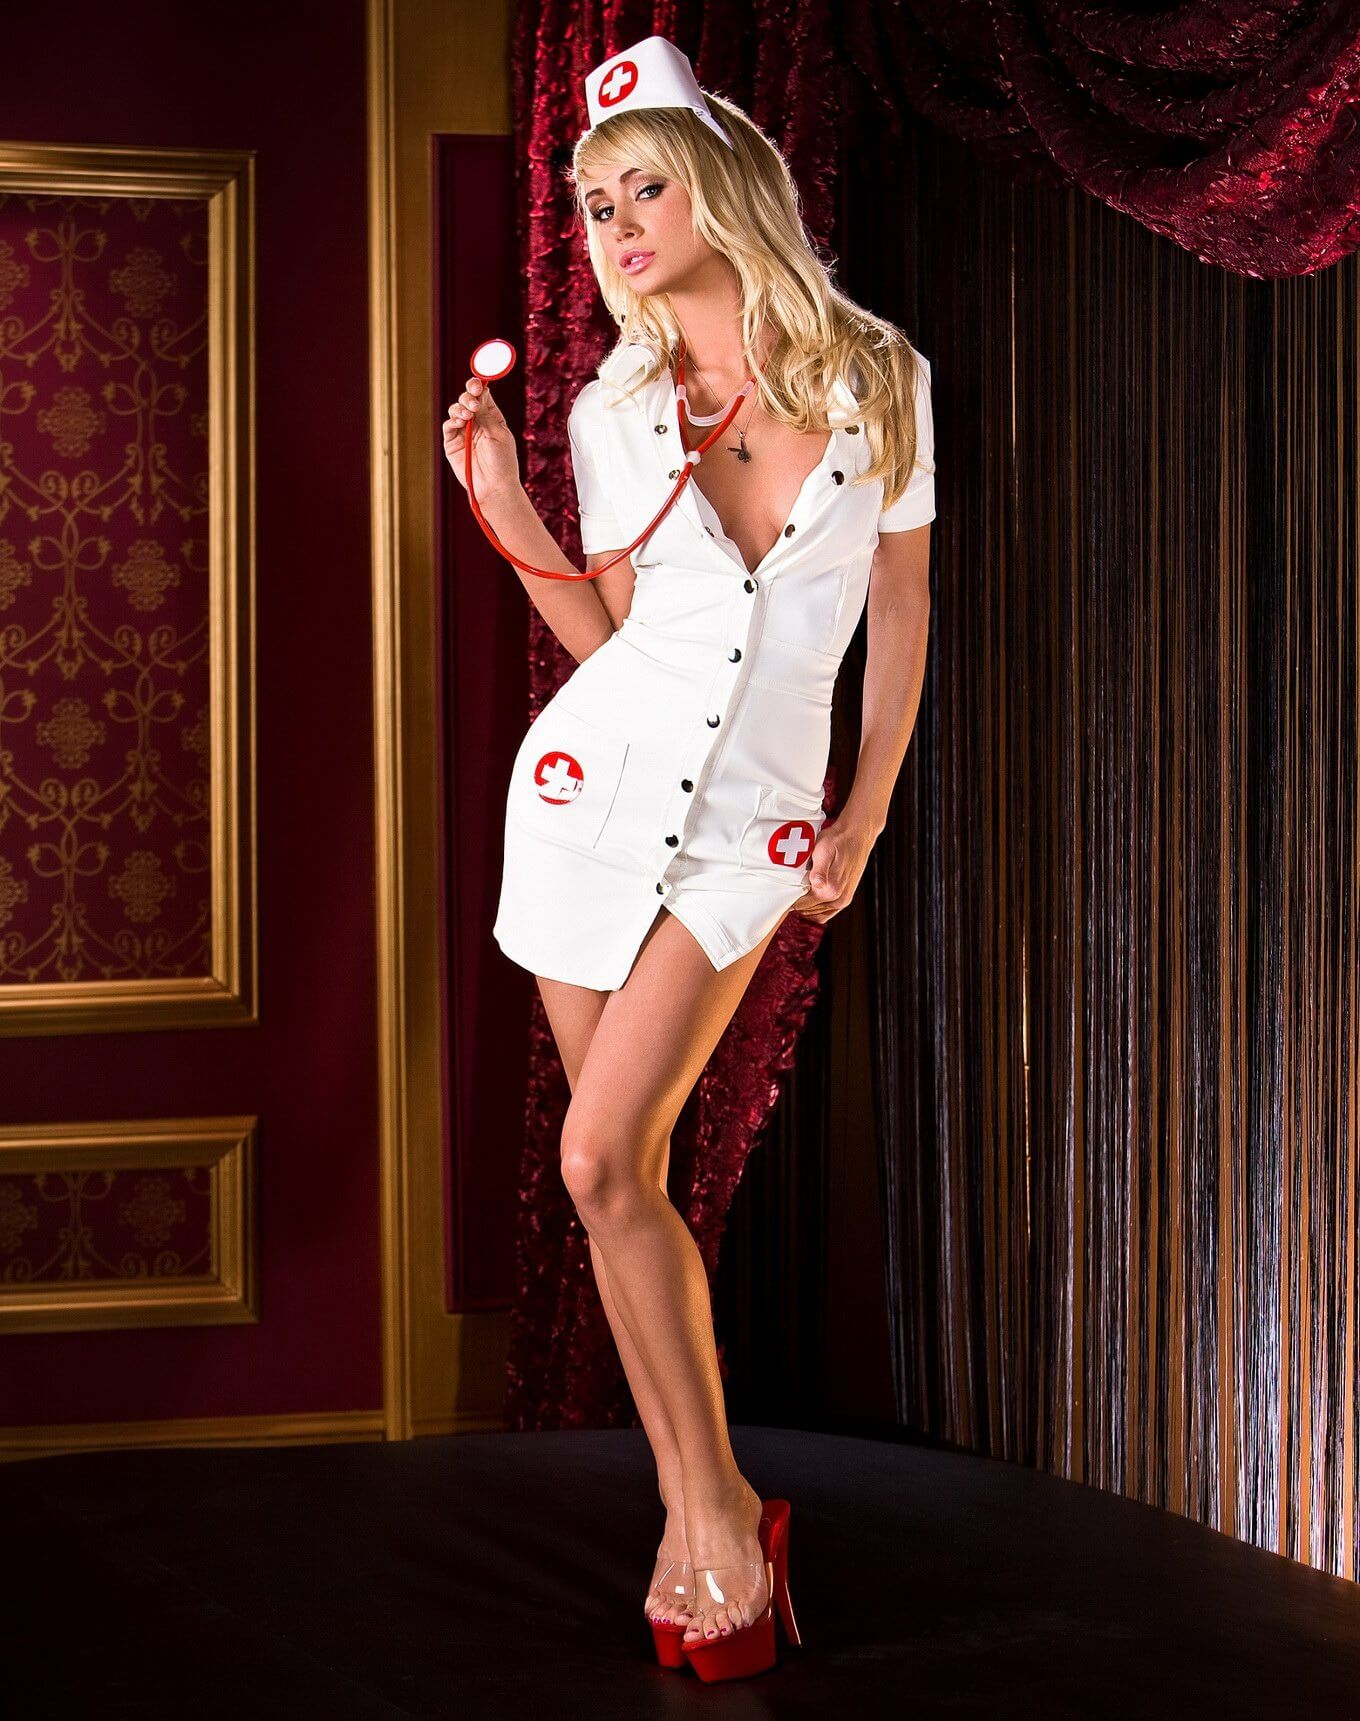 Sara Jean Underwood sexy white dress